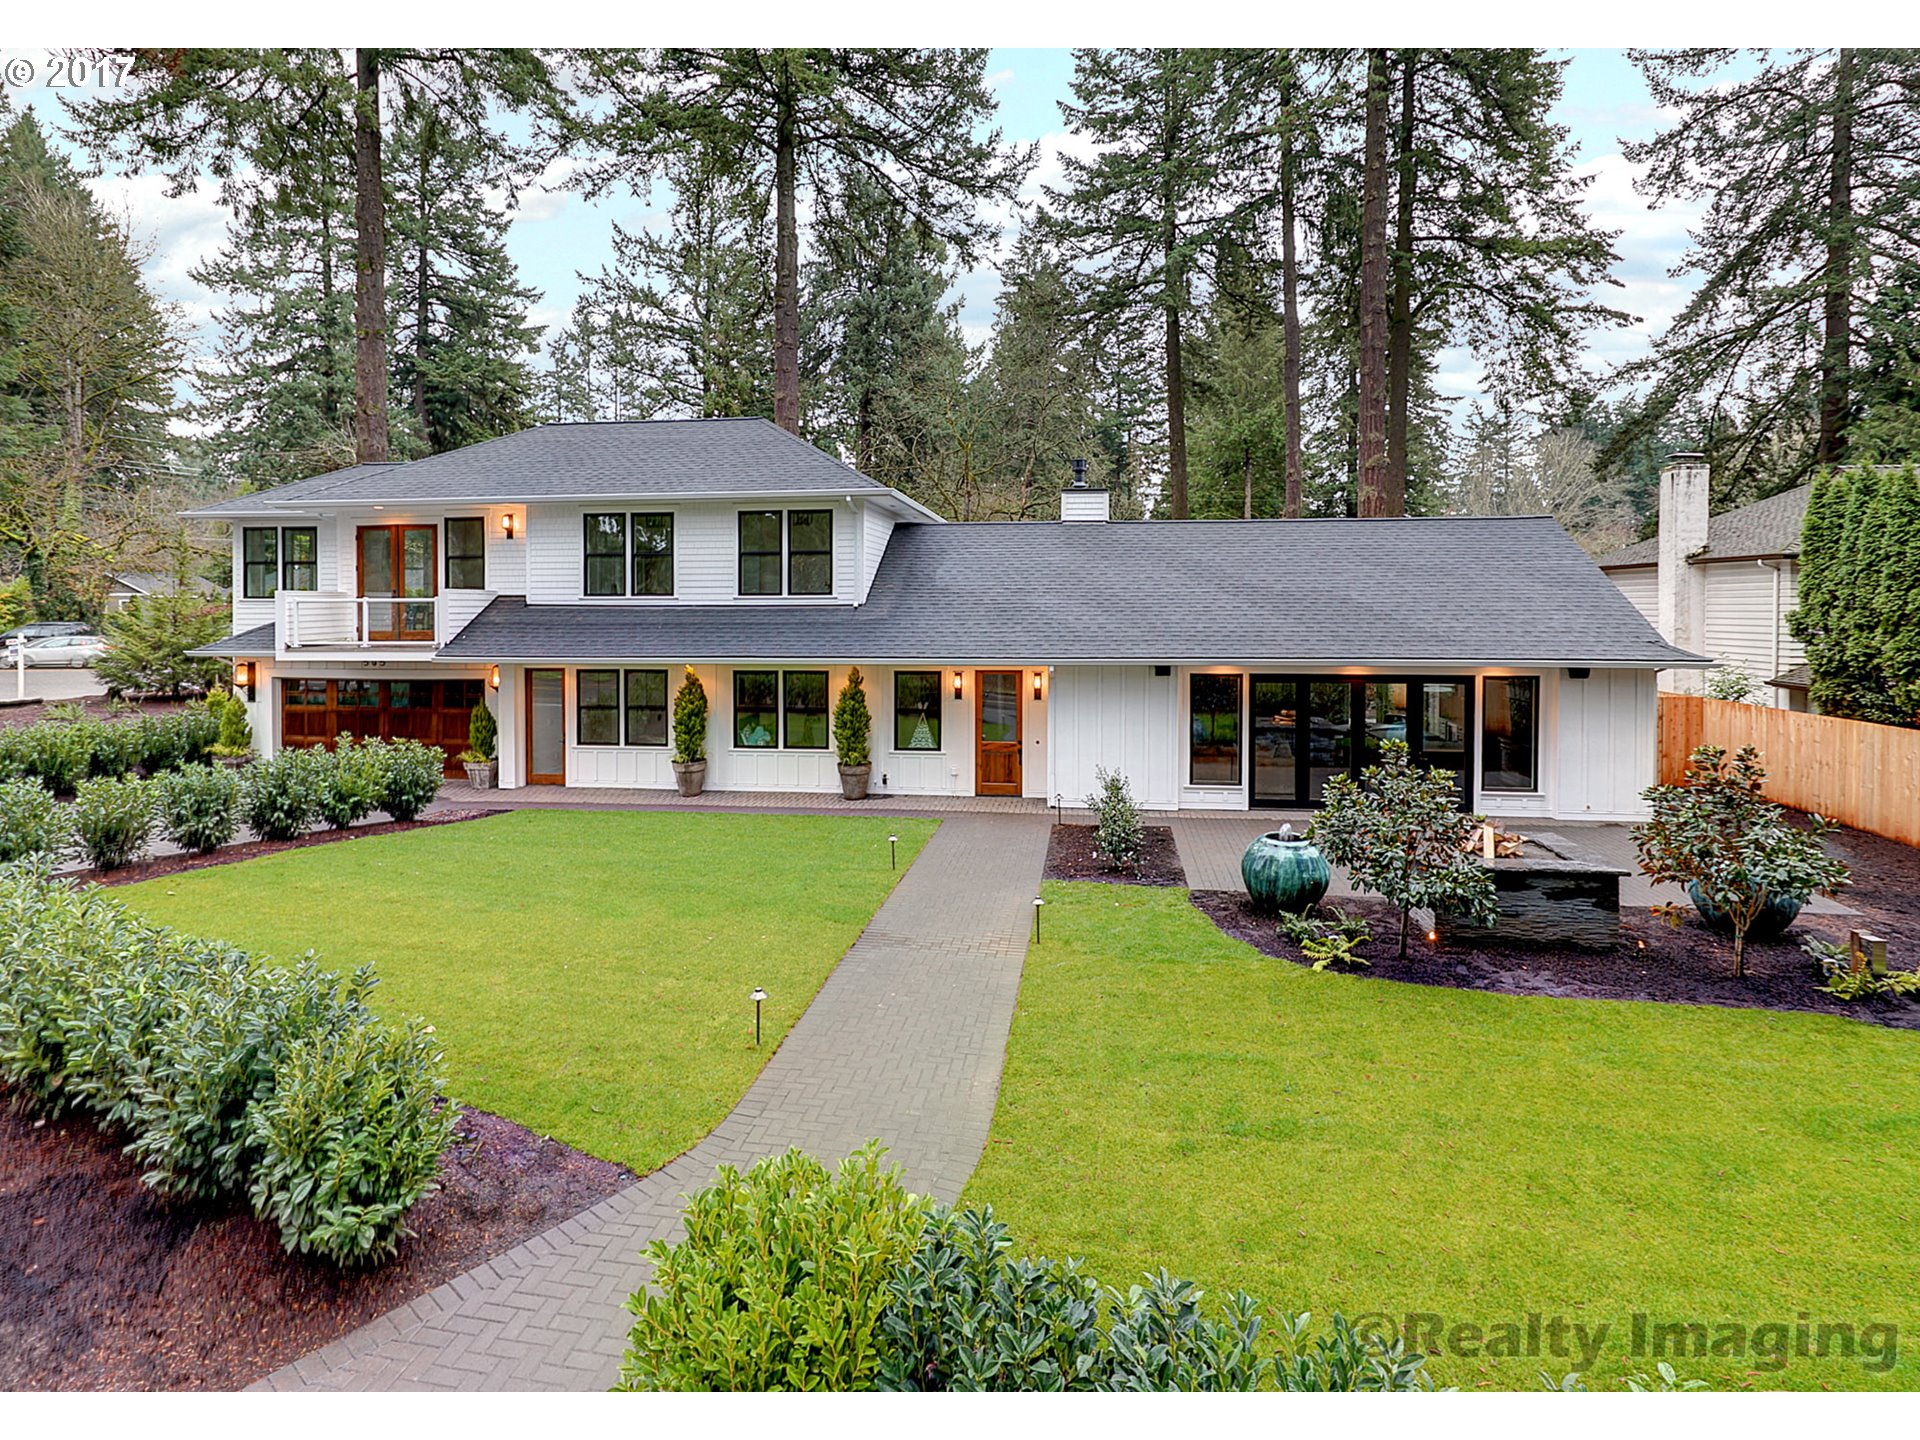 505 IRON MOUNTAIN BLVD, Lake Oswego, OR 97034